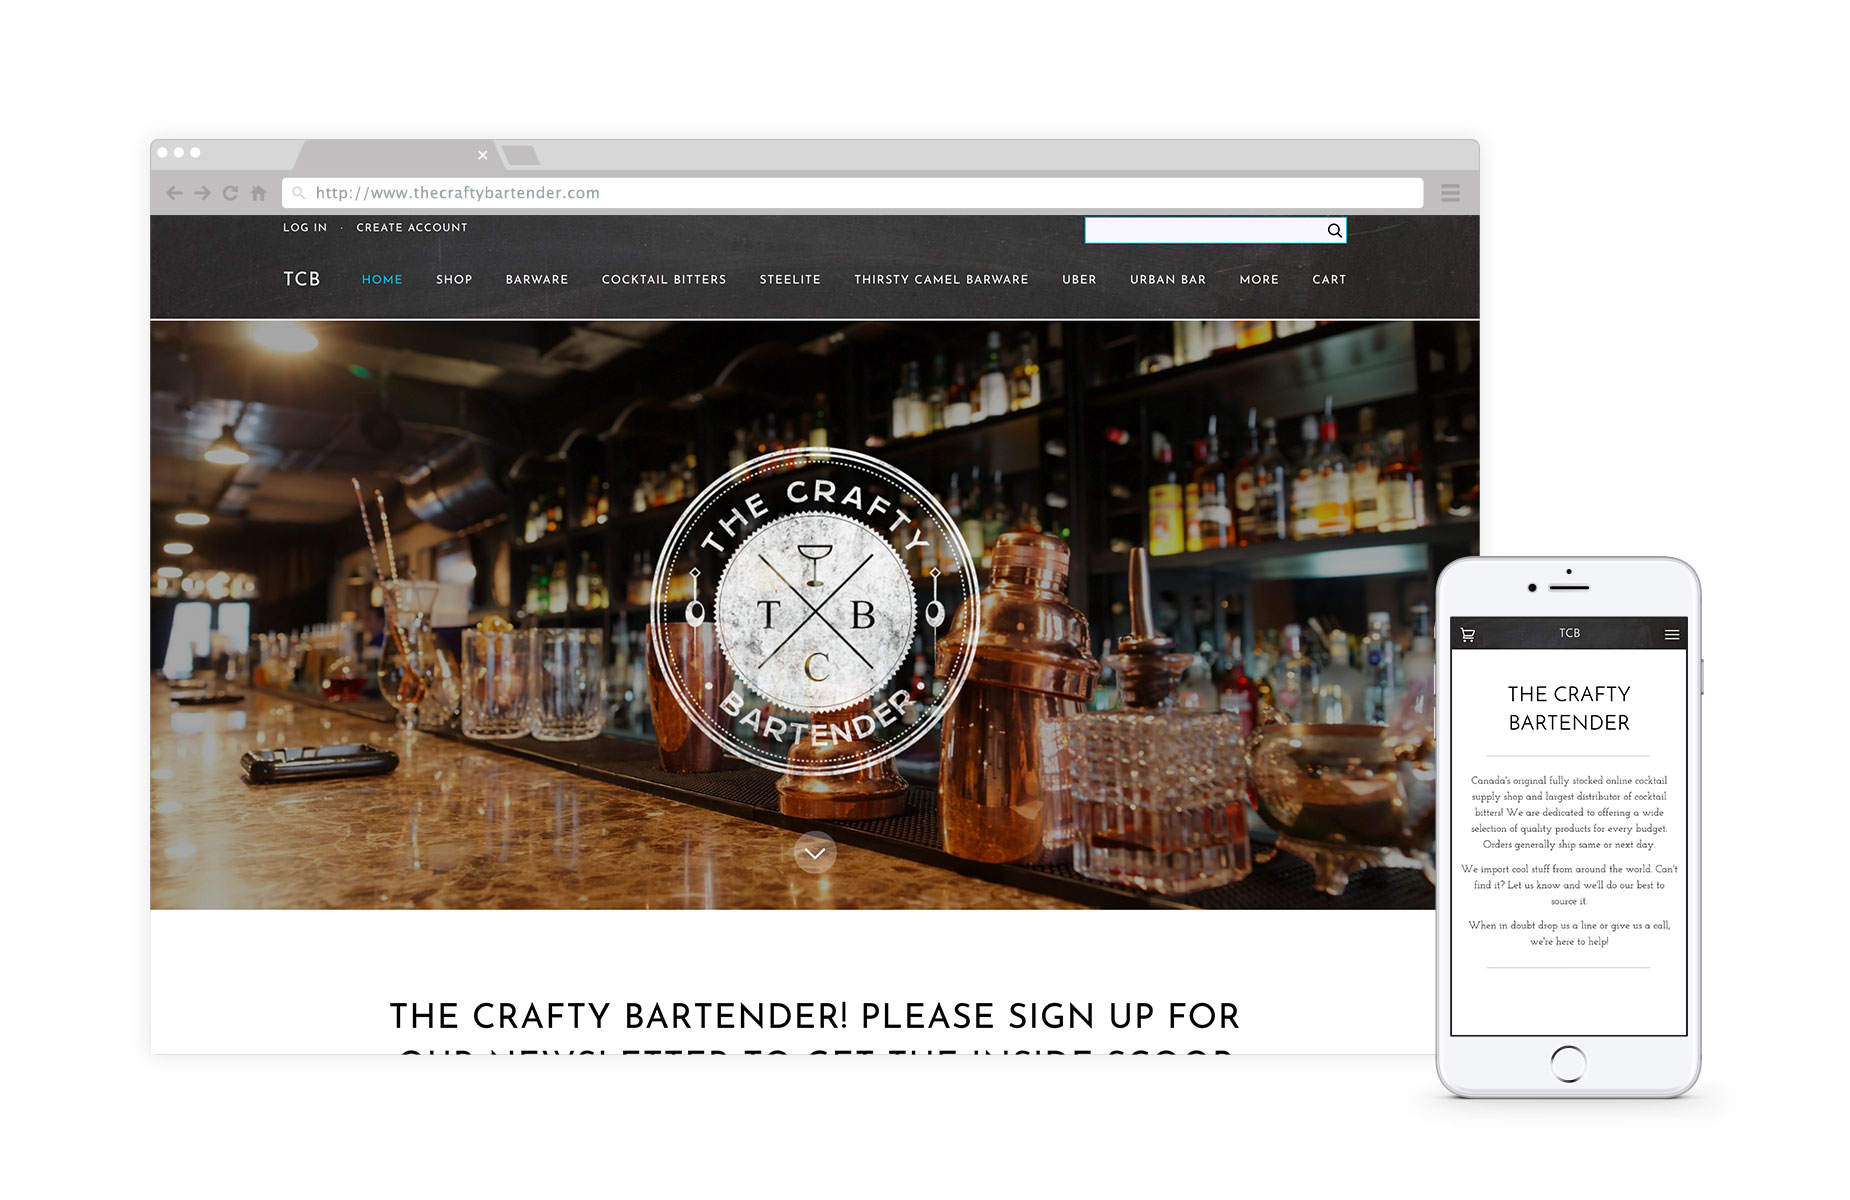 The Crafty Bartender - The Crafty Bartender is Canada's only fully stocked online cocktail supply shop and largest distributor of cocktail bitters. #ecommerceLearn how we worked with TCB to create a Shopify store